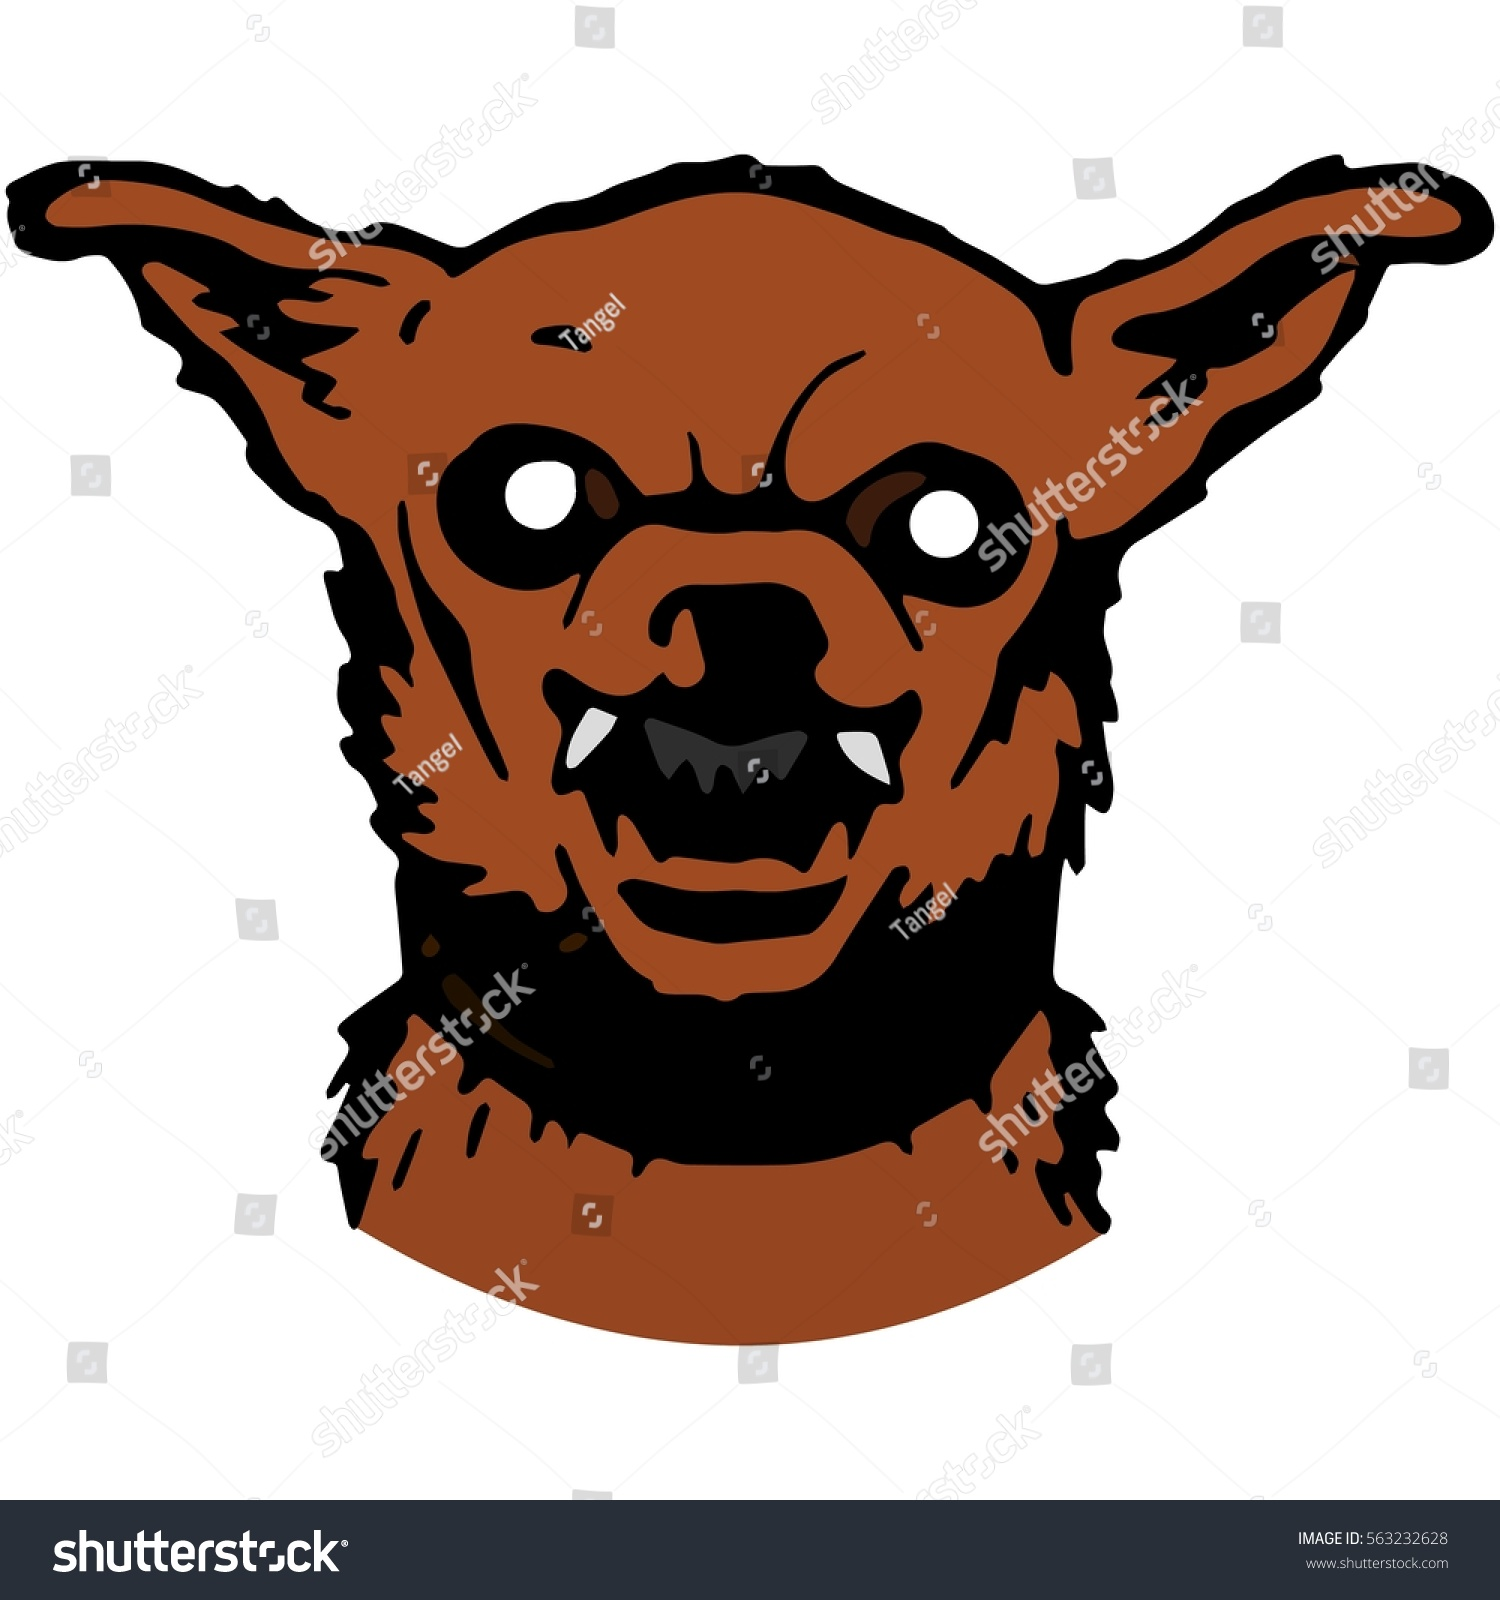 List of Synonyms and Antonyms of the Word: evil dog cartoon